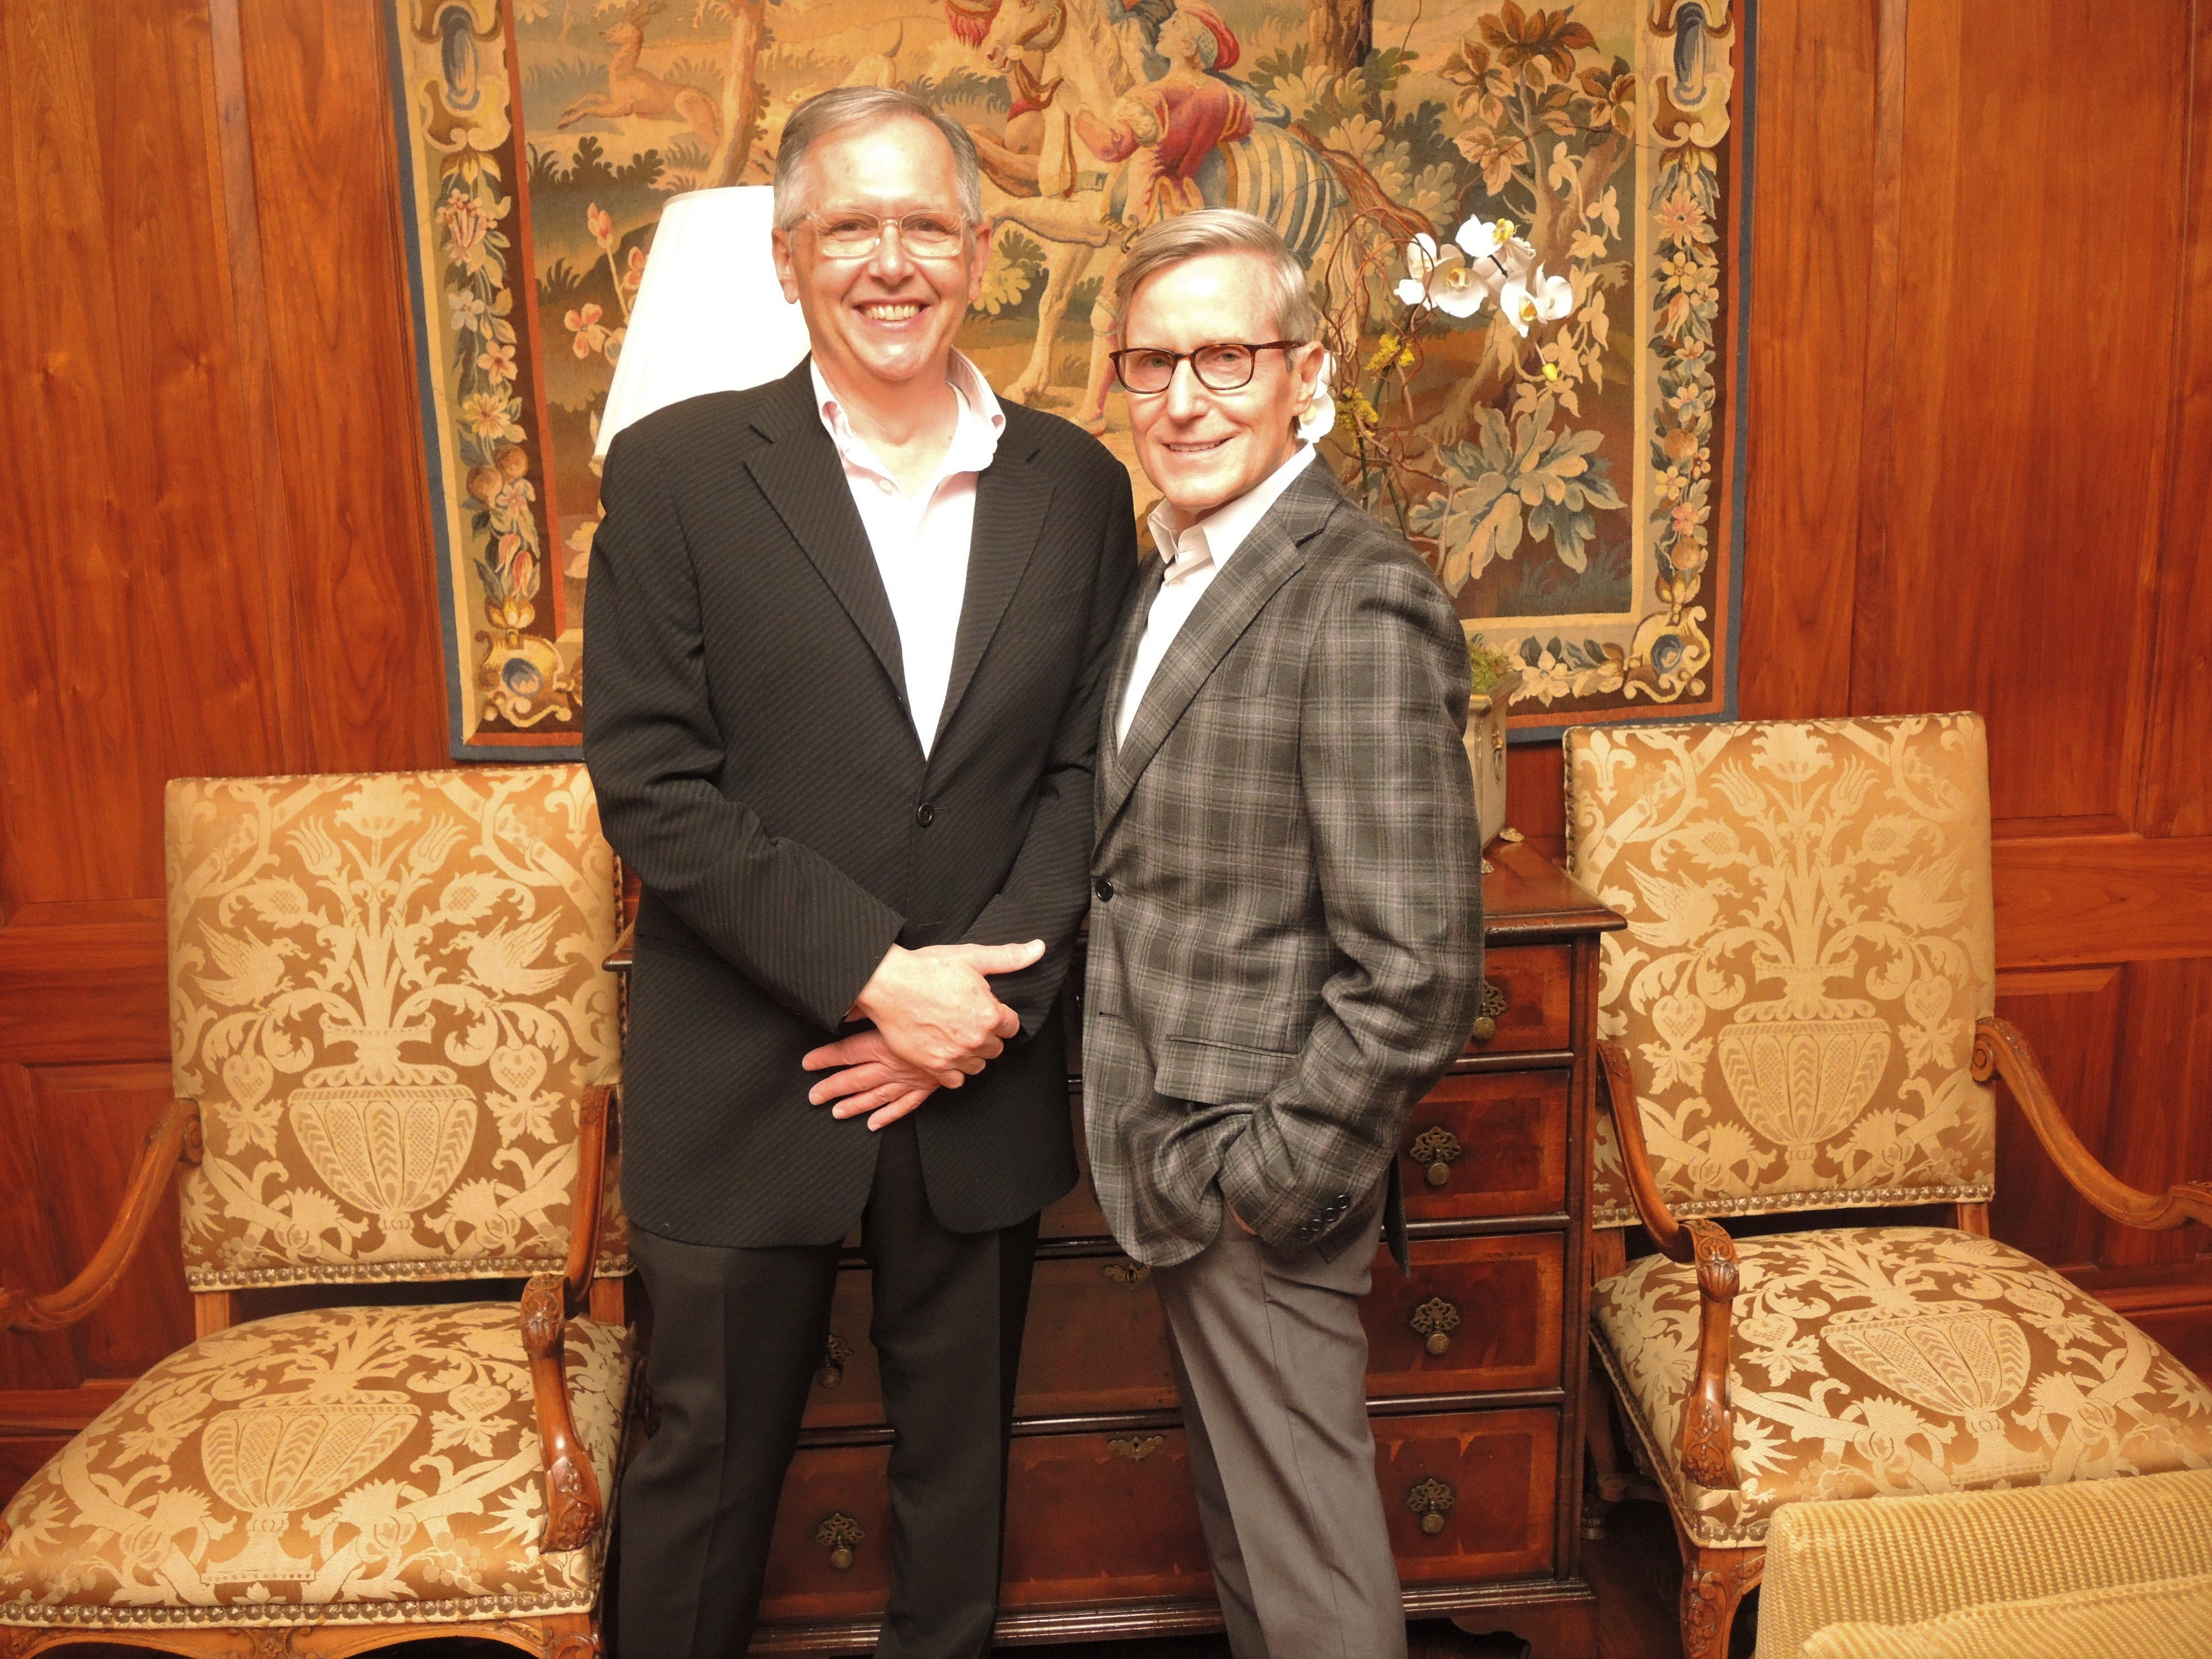 Monty Smith, left, and Mark O'Bryan at the Swan Ball 2019 Unveiling, held at the home of Kathy and Bobby Rolfe.